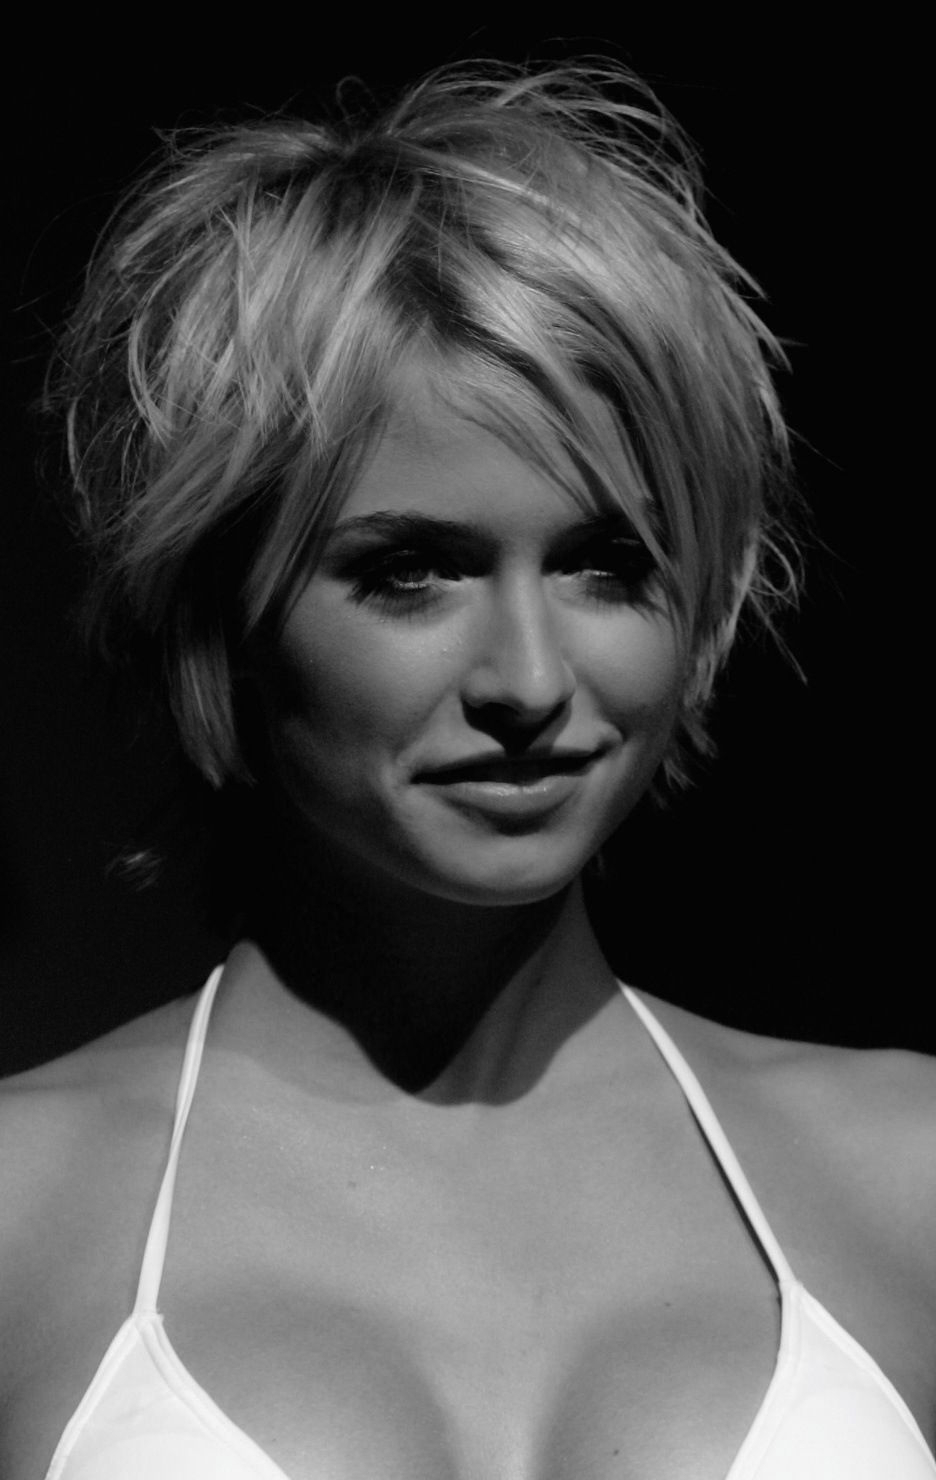 Sexy Short Hair Should I Chop It?   My Style In 2018   Pinterest For Cute Sexy Short Haircuts (View 3 of 25)